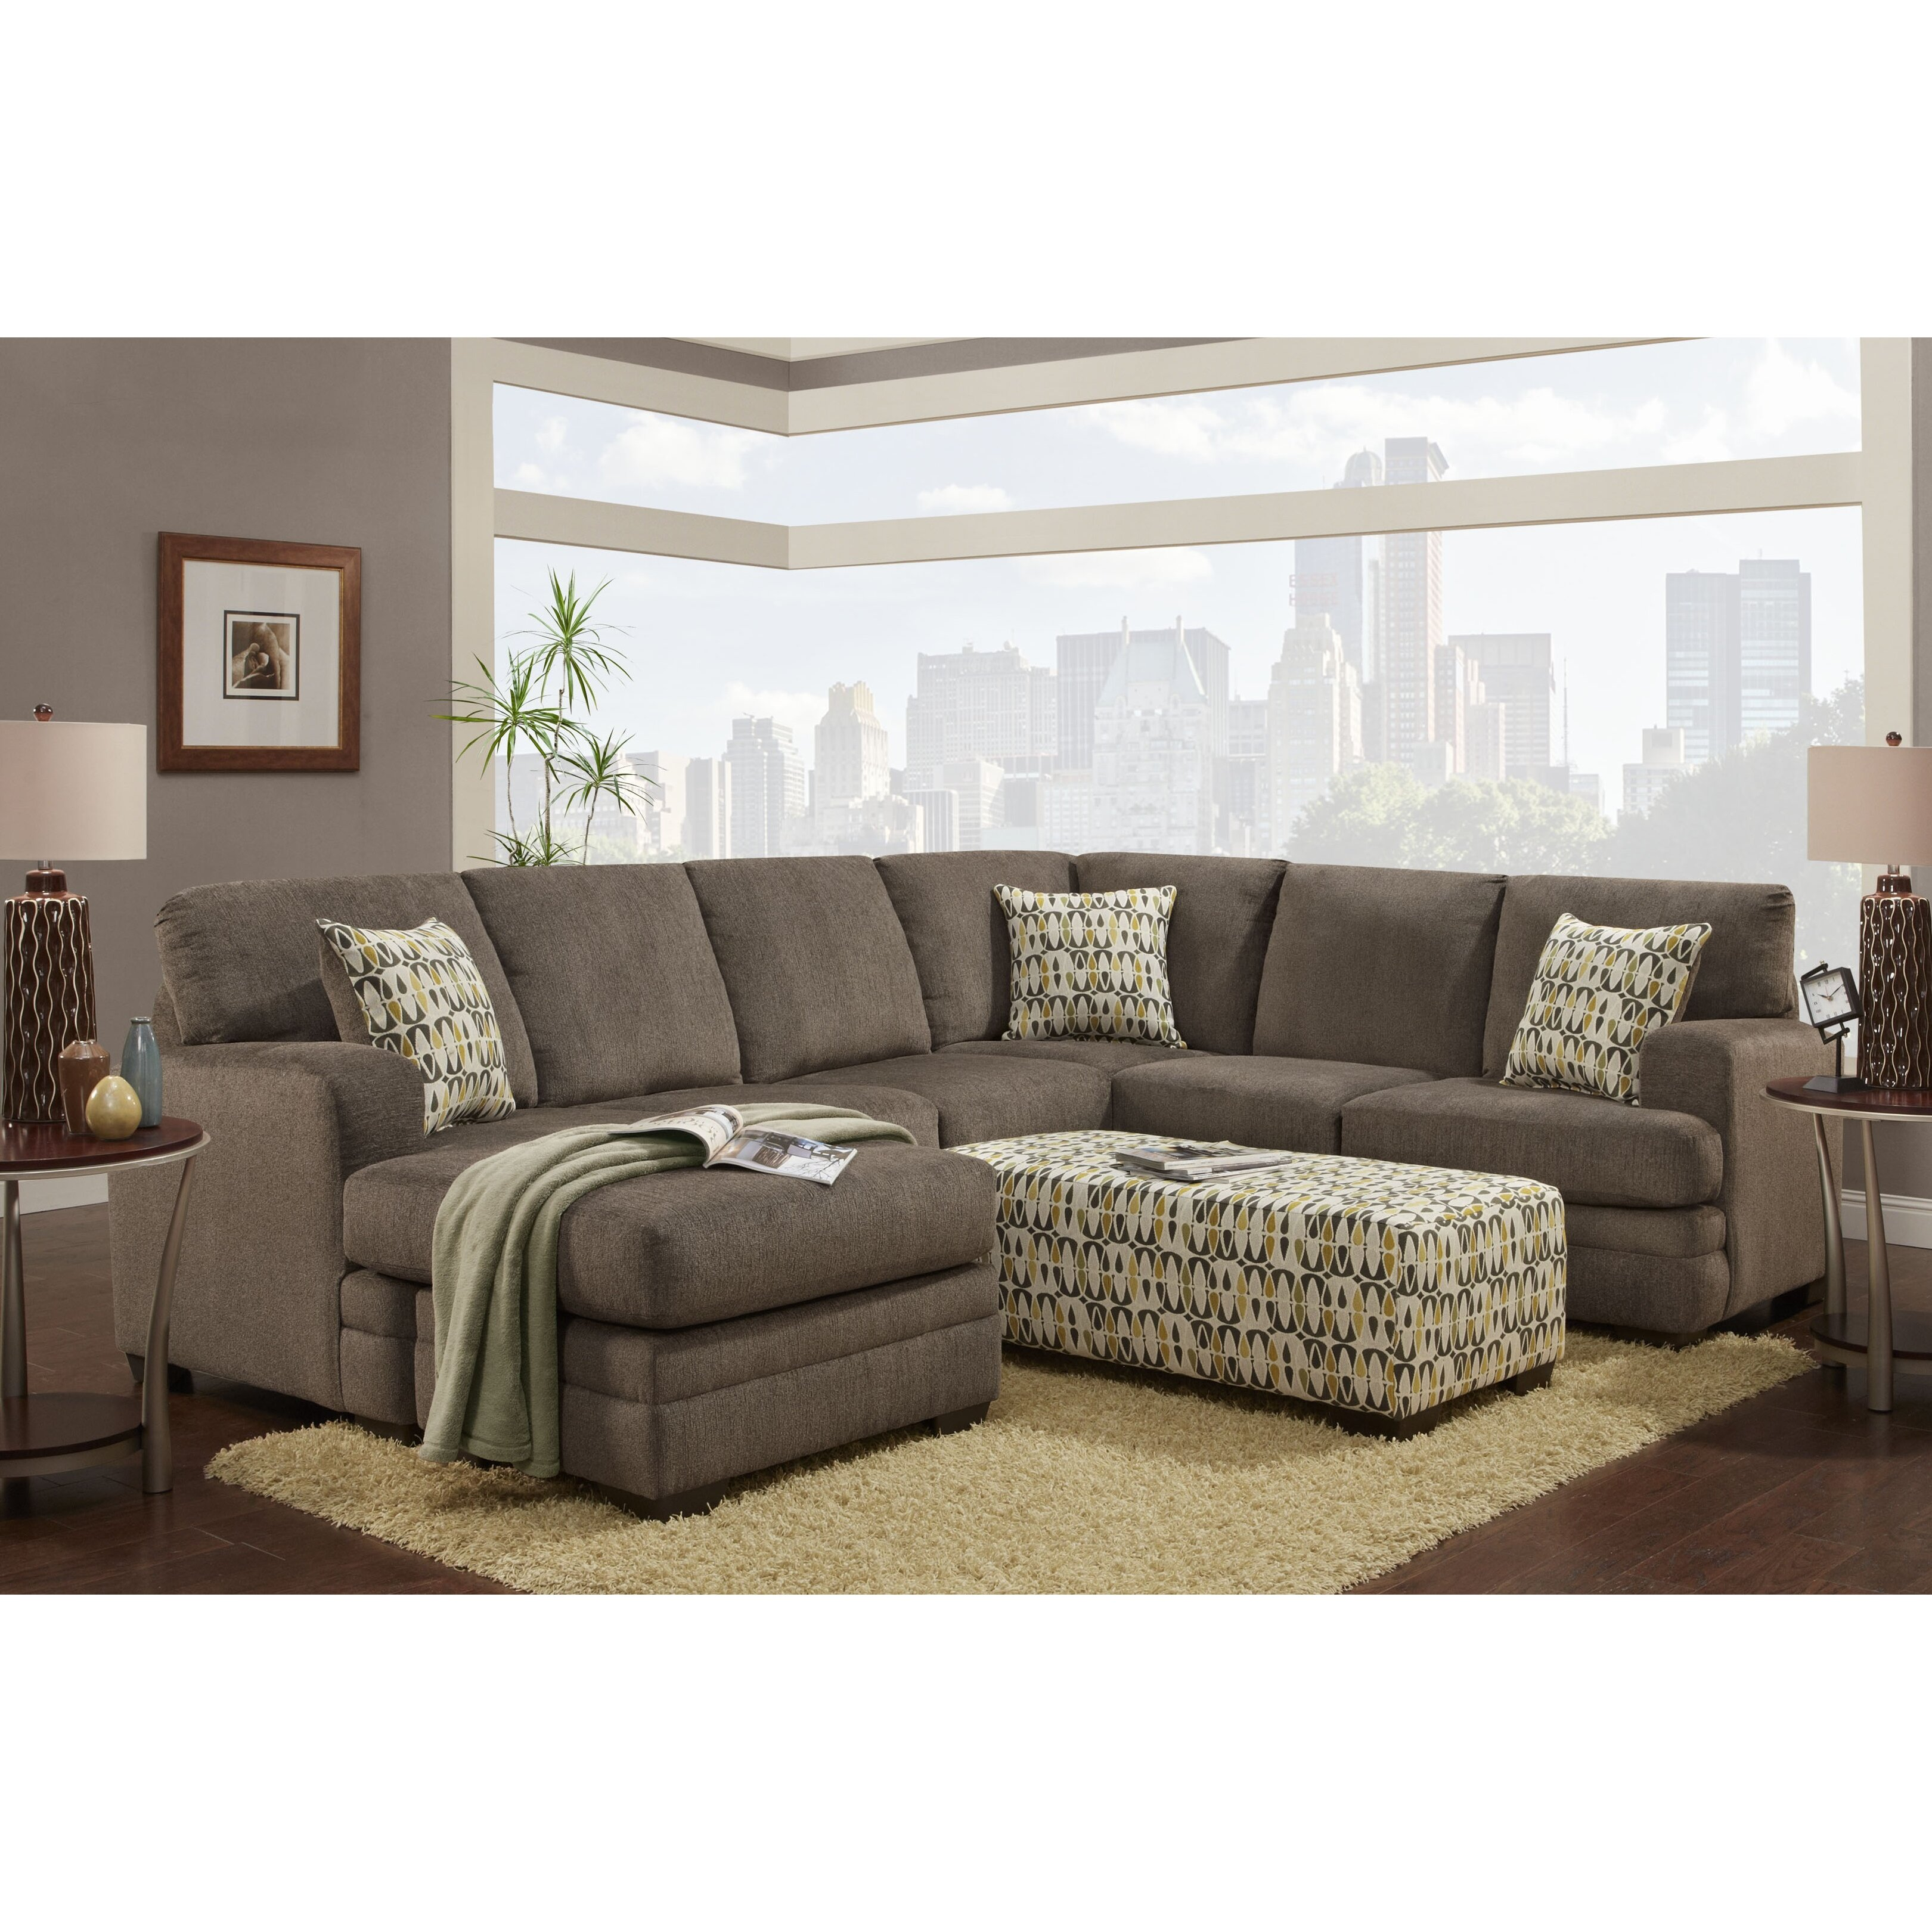 Chelsea home furniture northborough sectional wayfair for Find home furnishings